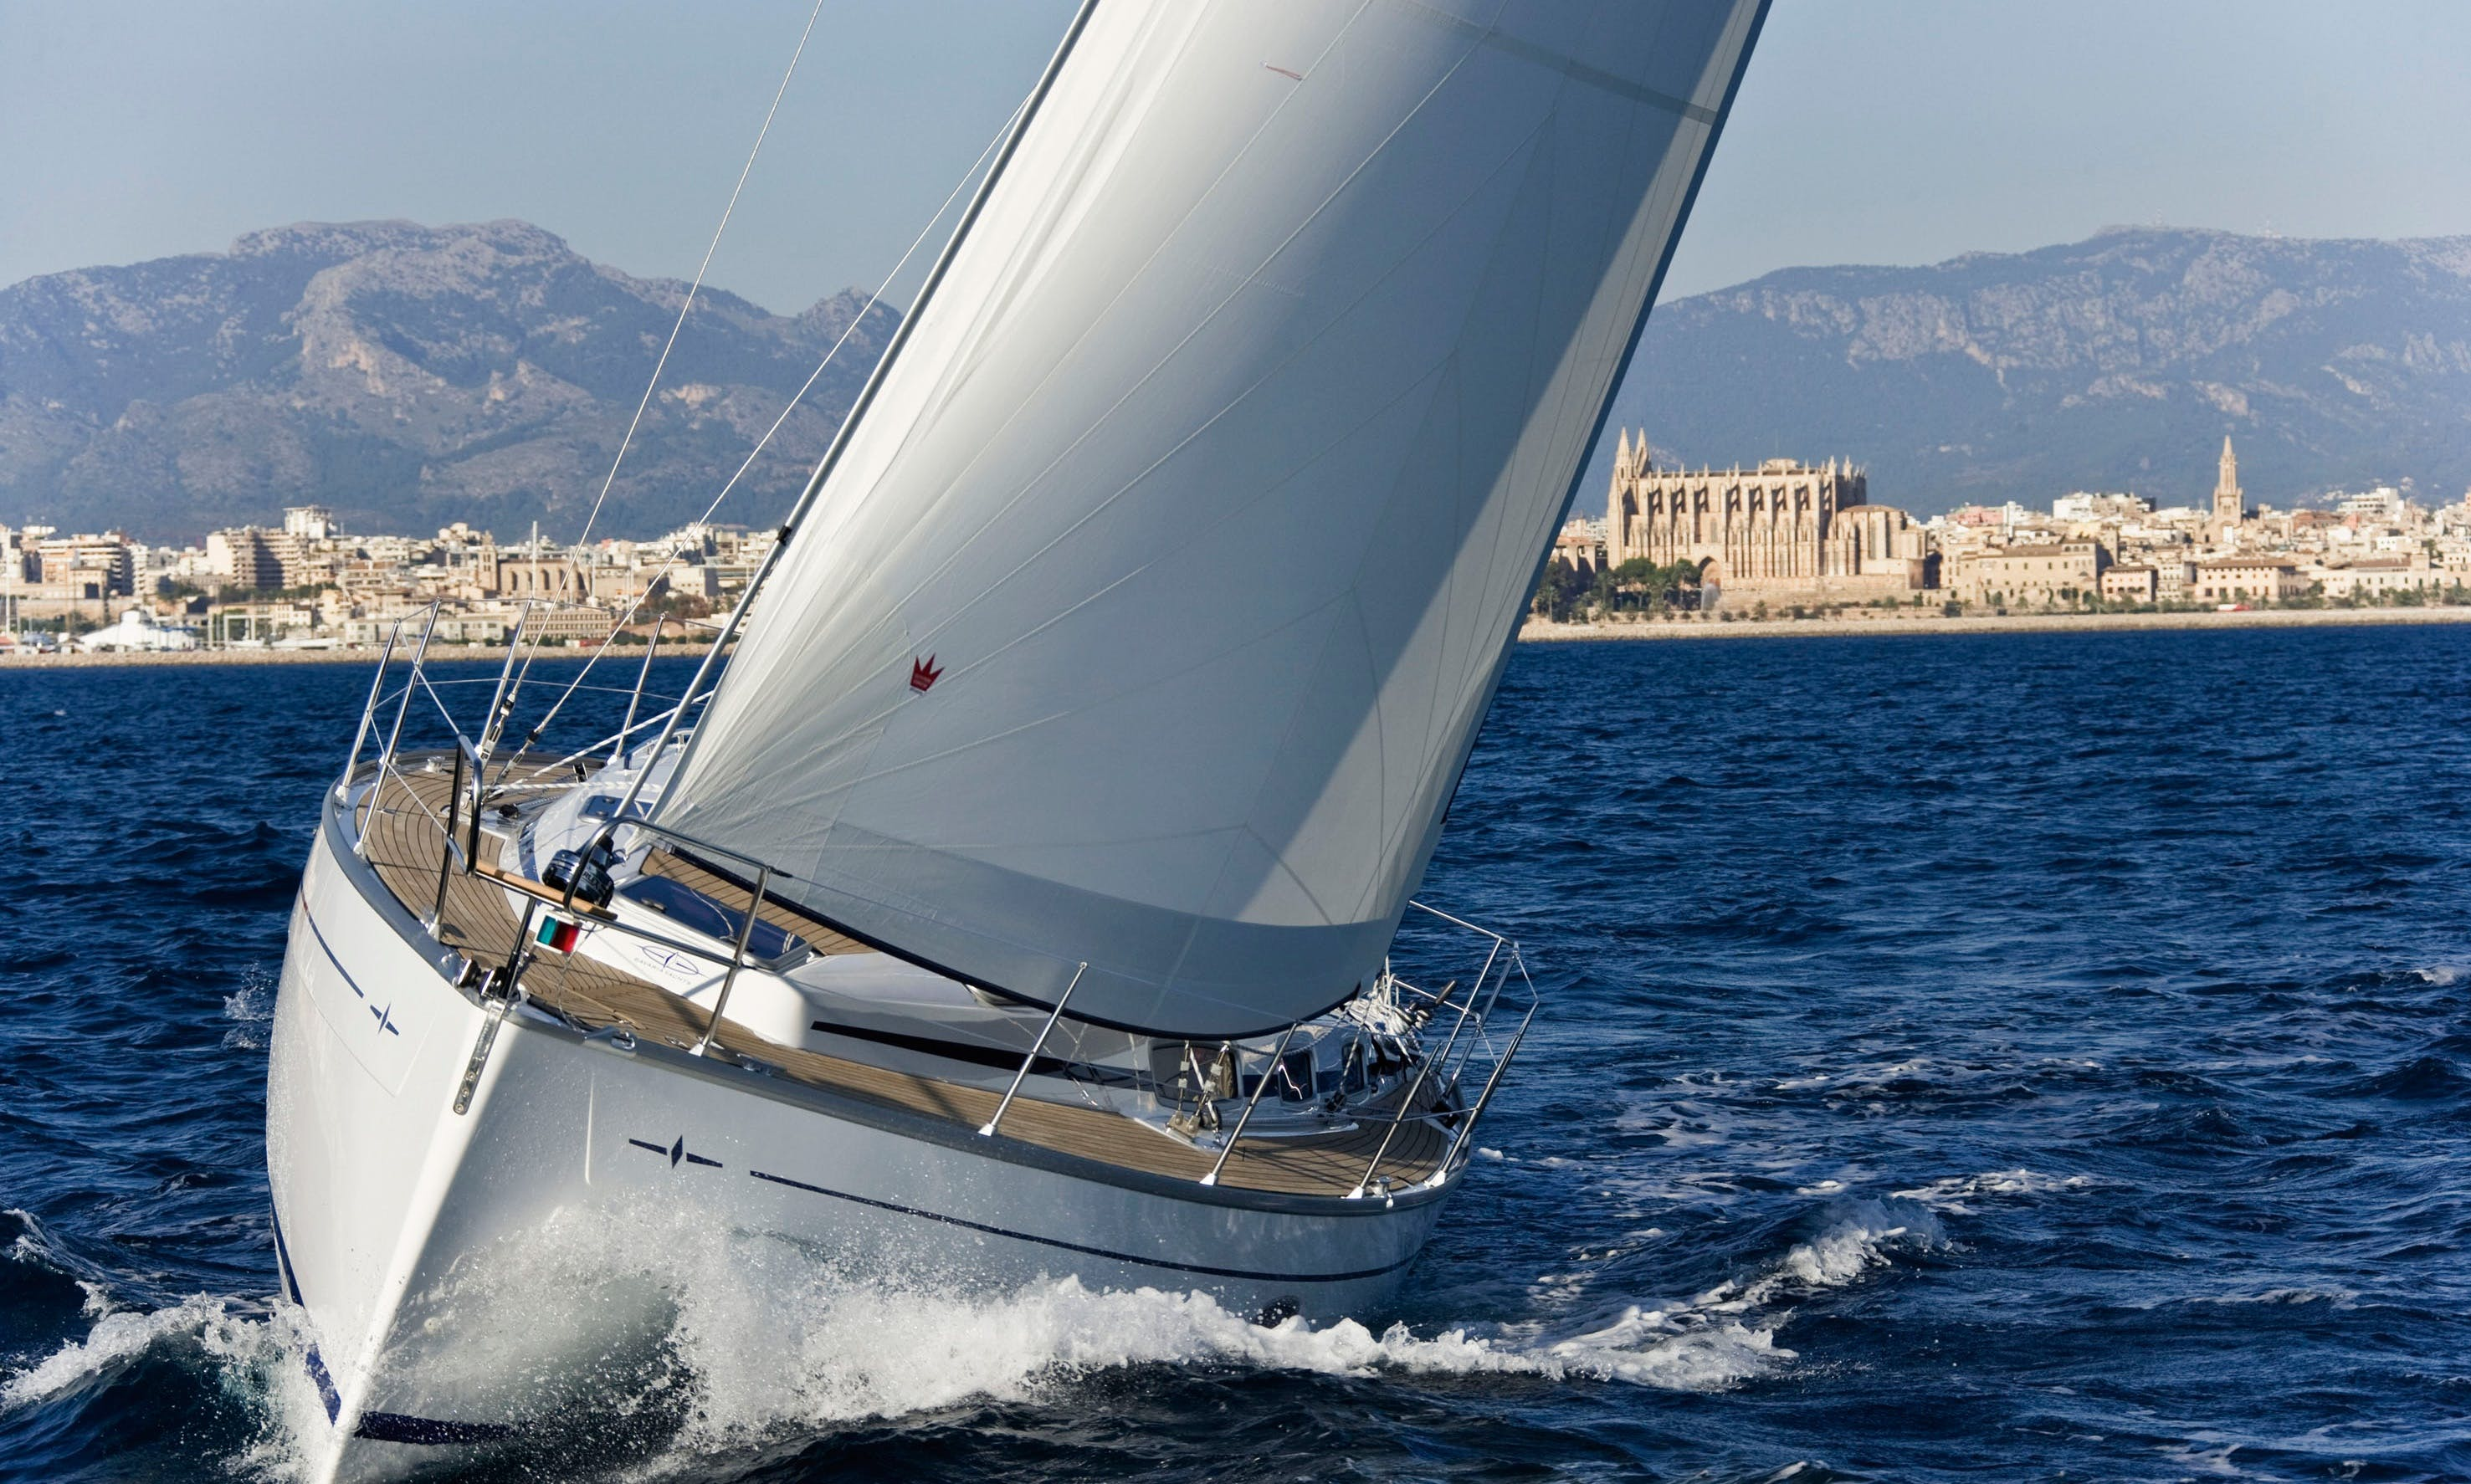 Sailing Charter On 31ft Rizzardi Avallone Duck Cruising Monohull In Sorrento, Italy